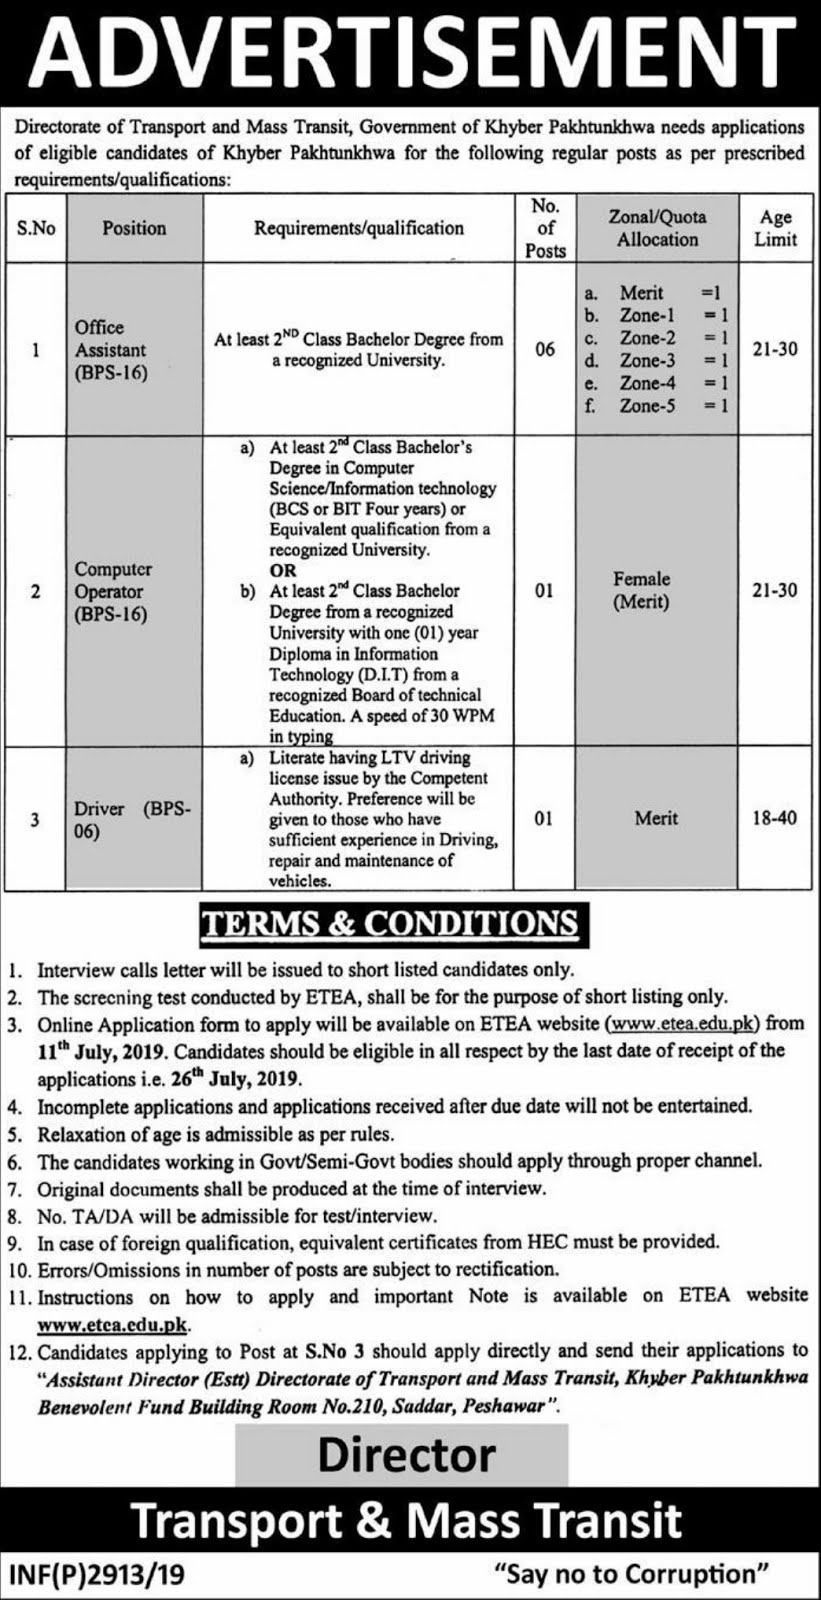 DTE of Transport And Mass Transit Jobs 2019 Through ETEA,transport and mass transit department jobs 2019,transit,transport and mass transit department new jobs 2019,jobs in transport and mass transit department,public transport (industry),transport and mass transit department,jobs in transport and mass in karachi 2019,transport and mass transit department jobs 2019 || tahseen jobs,public transit,government jobs,etea,jobs,kpk police jobs 2019,police jobs,etea jobs,etea test,etea jobs kpk,etea jobs 2019,new jobs,etea jobs online,govt jobs,etea apply,etea jobs in kpk 2019,latest jobs in kpk,etea jobs application form,polivce jobs 2019,etea forest department jobs 2019,new jobs in pakistan,etea mcqs,teachers jobs,etea forest department kpk jobs 2019 peshawar,todays jobs,pak jobs,tn police jobs,etea test 2019